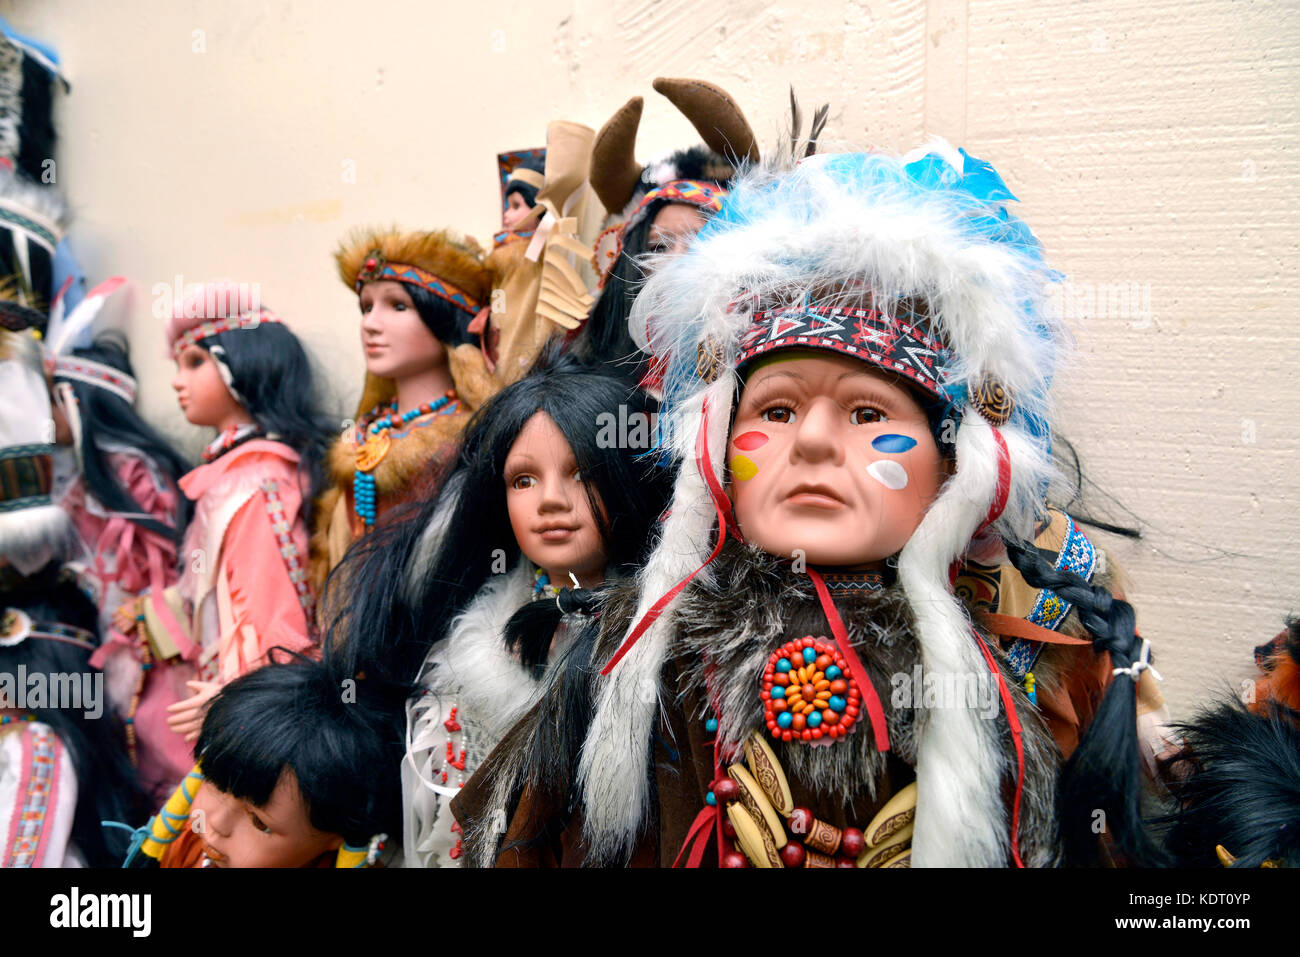 Dolls depicting Native Americans are sold at The Thing, a travel stop, along Interstate 10 east of Willcox, Arizona, - Stock Image